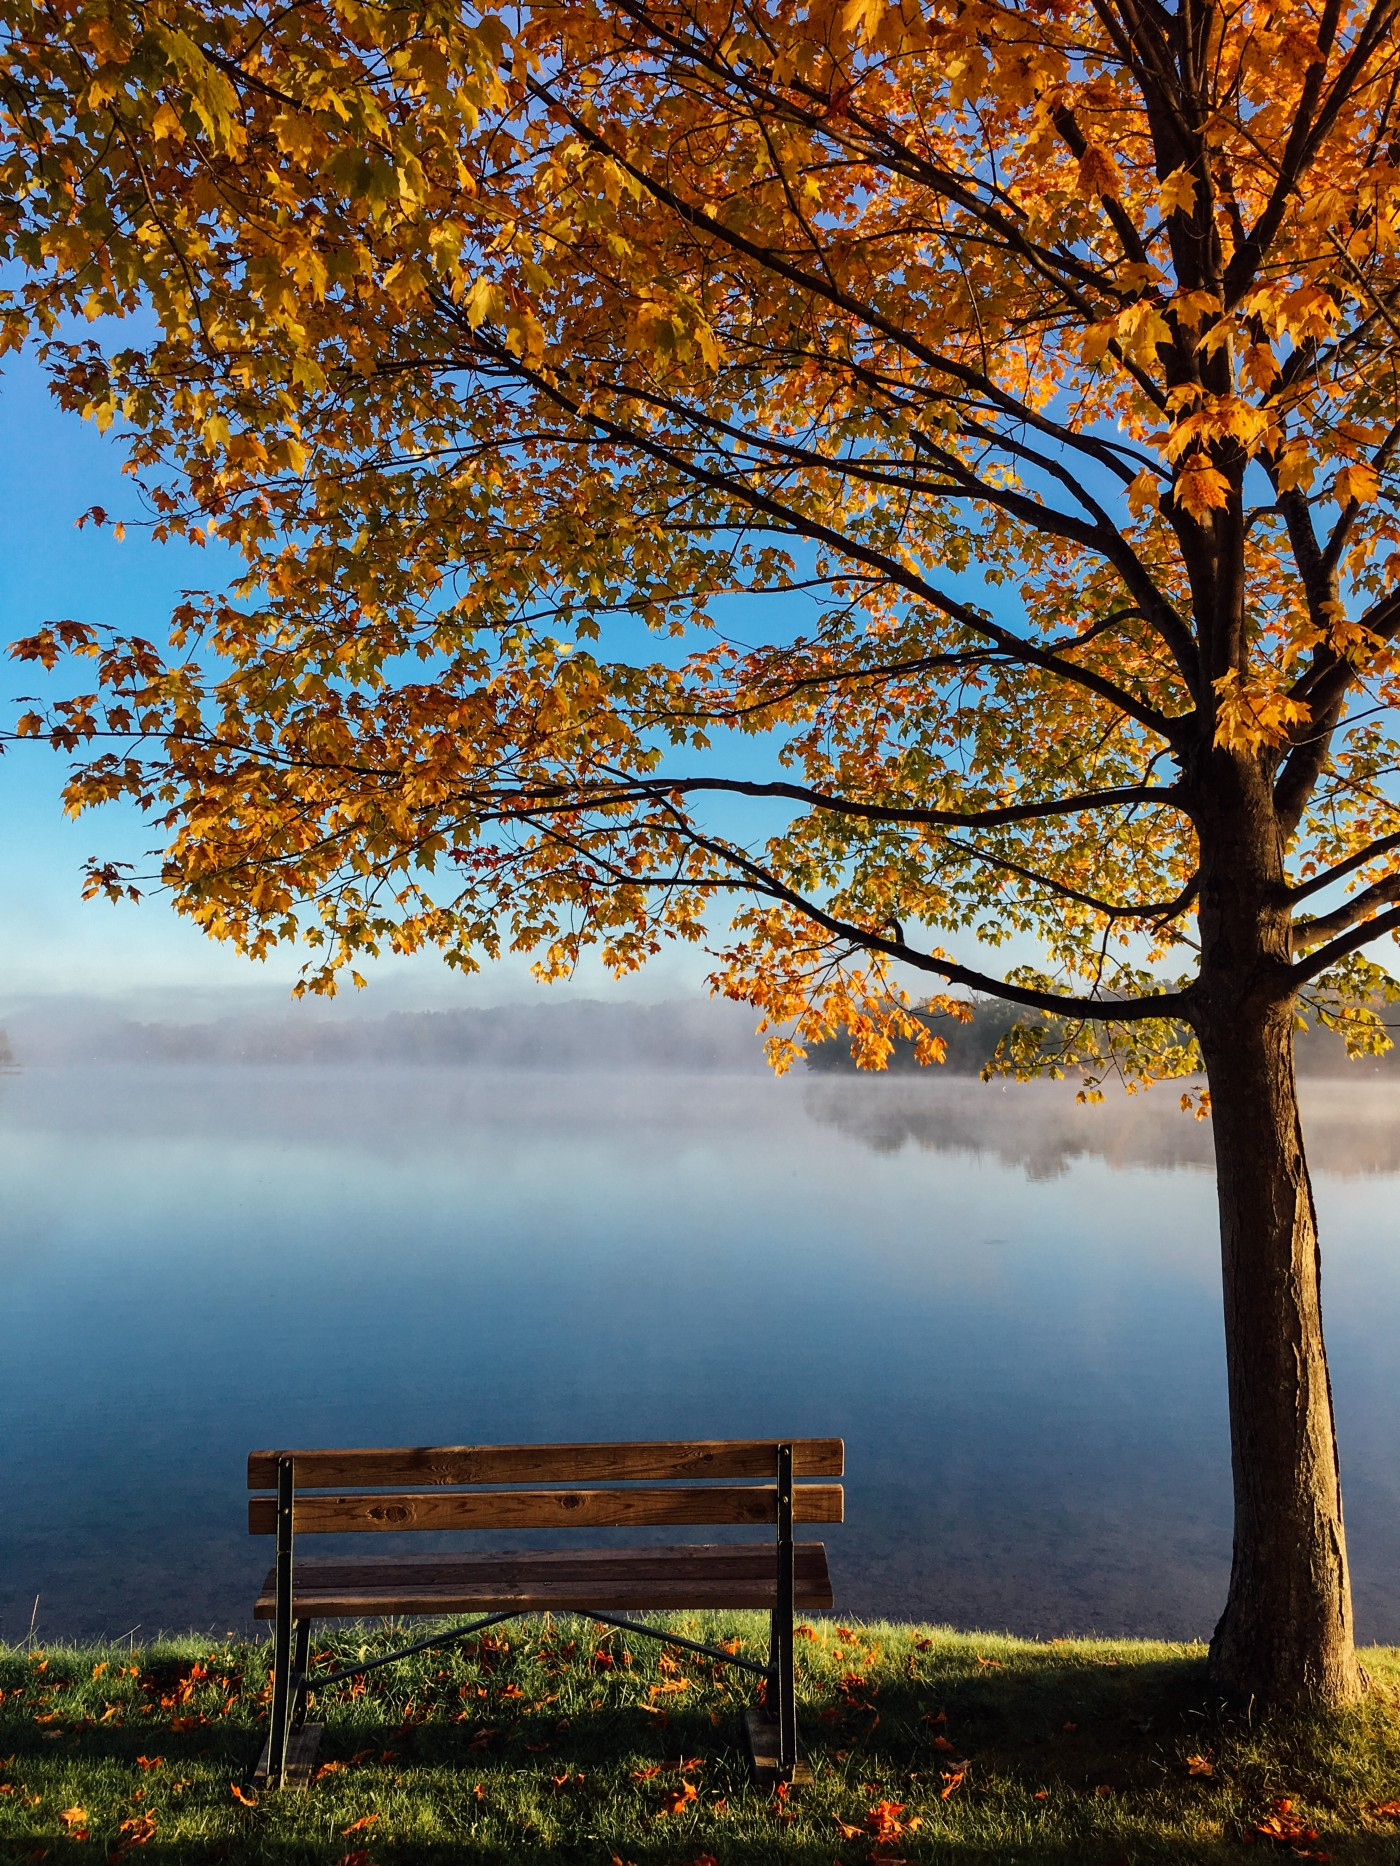 A tree with golden leaves next to a wide expanse of water